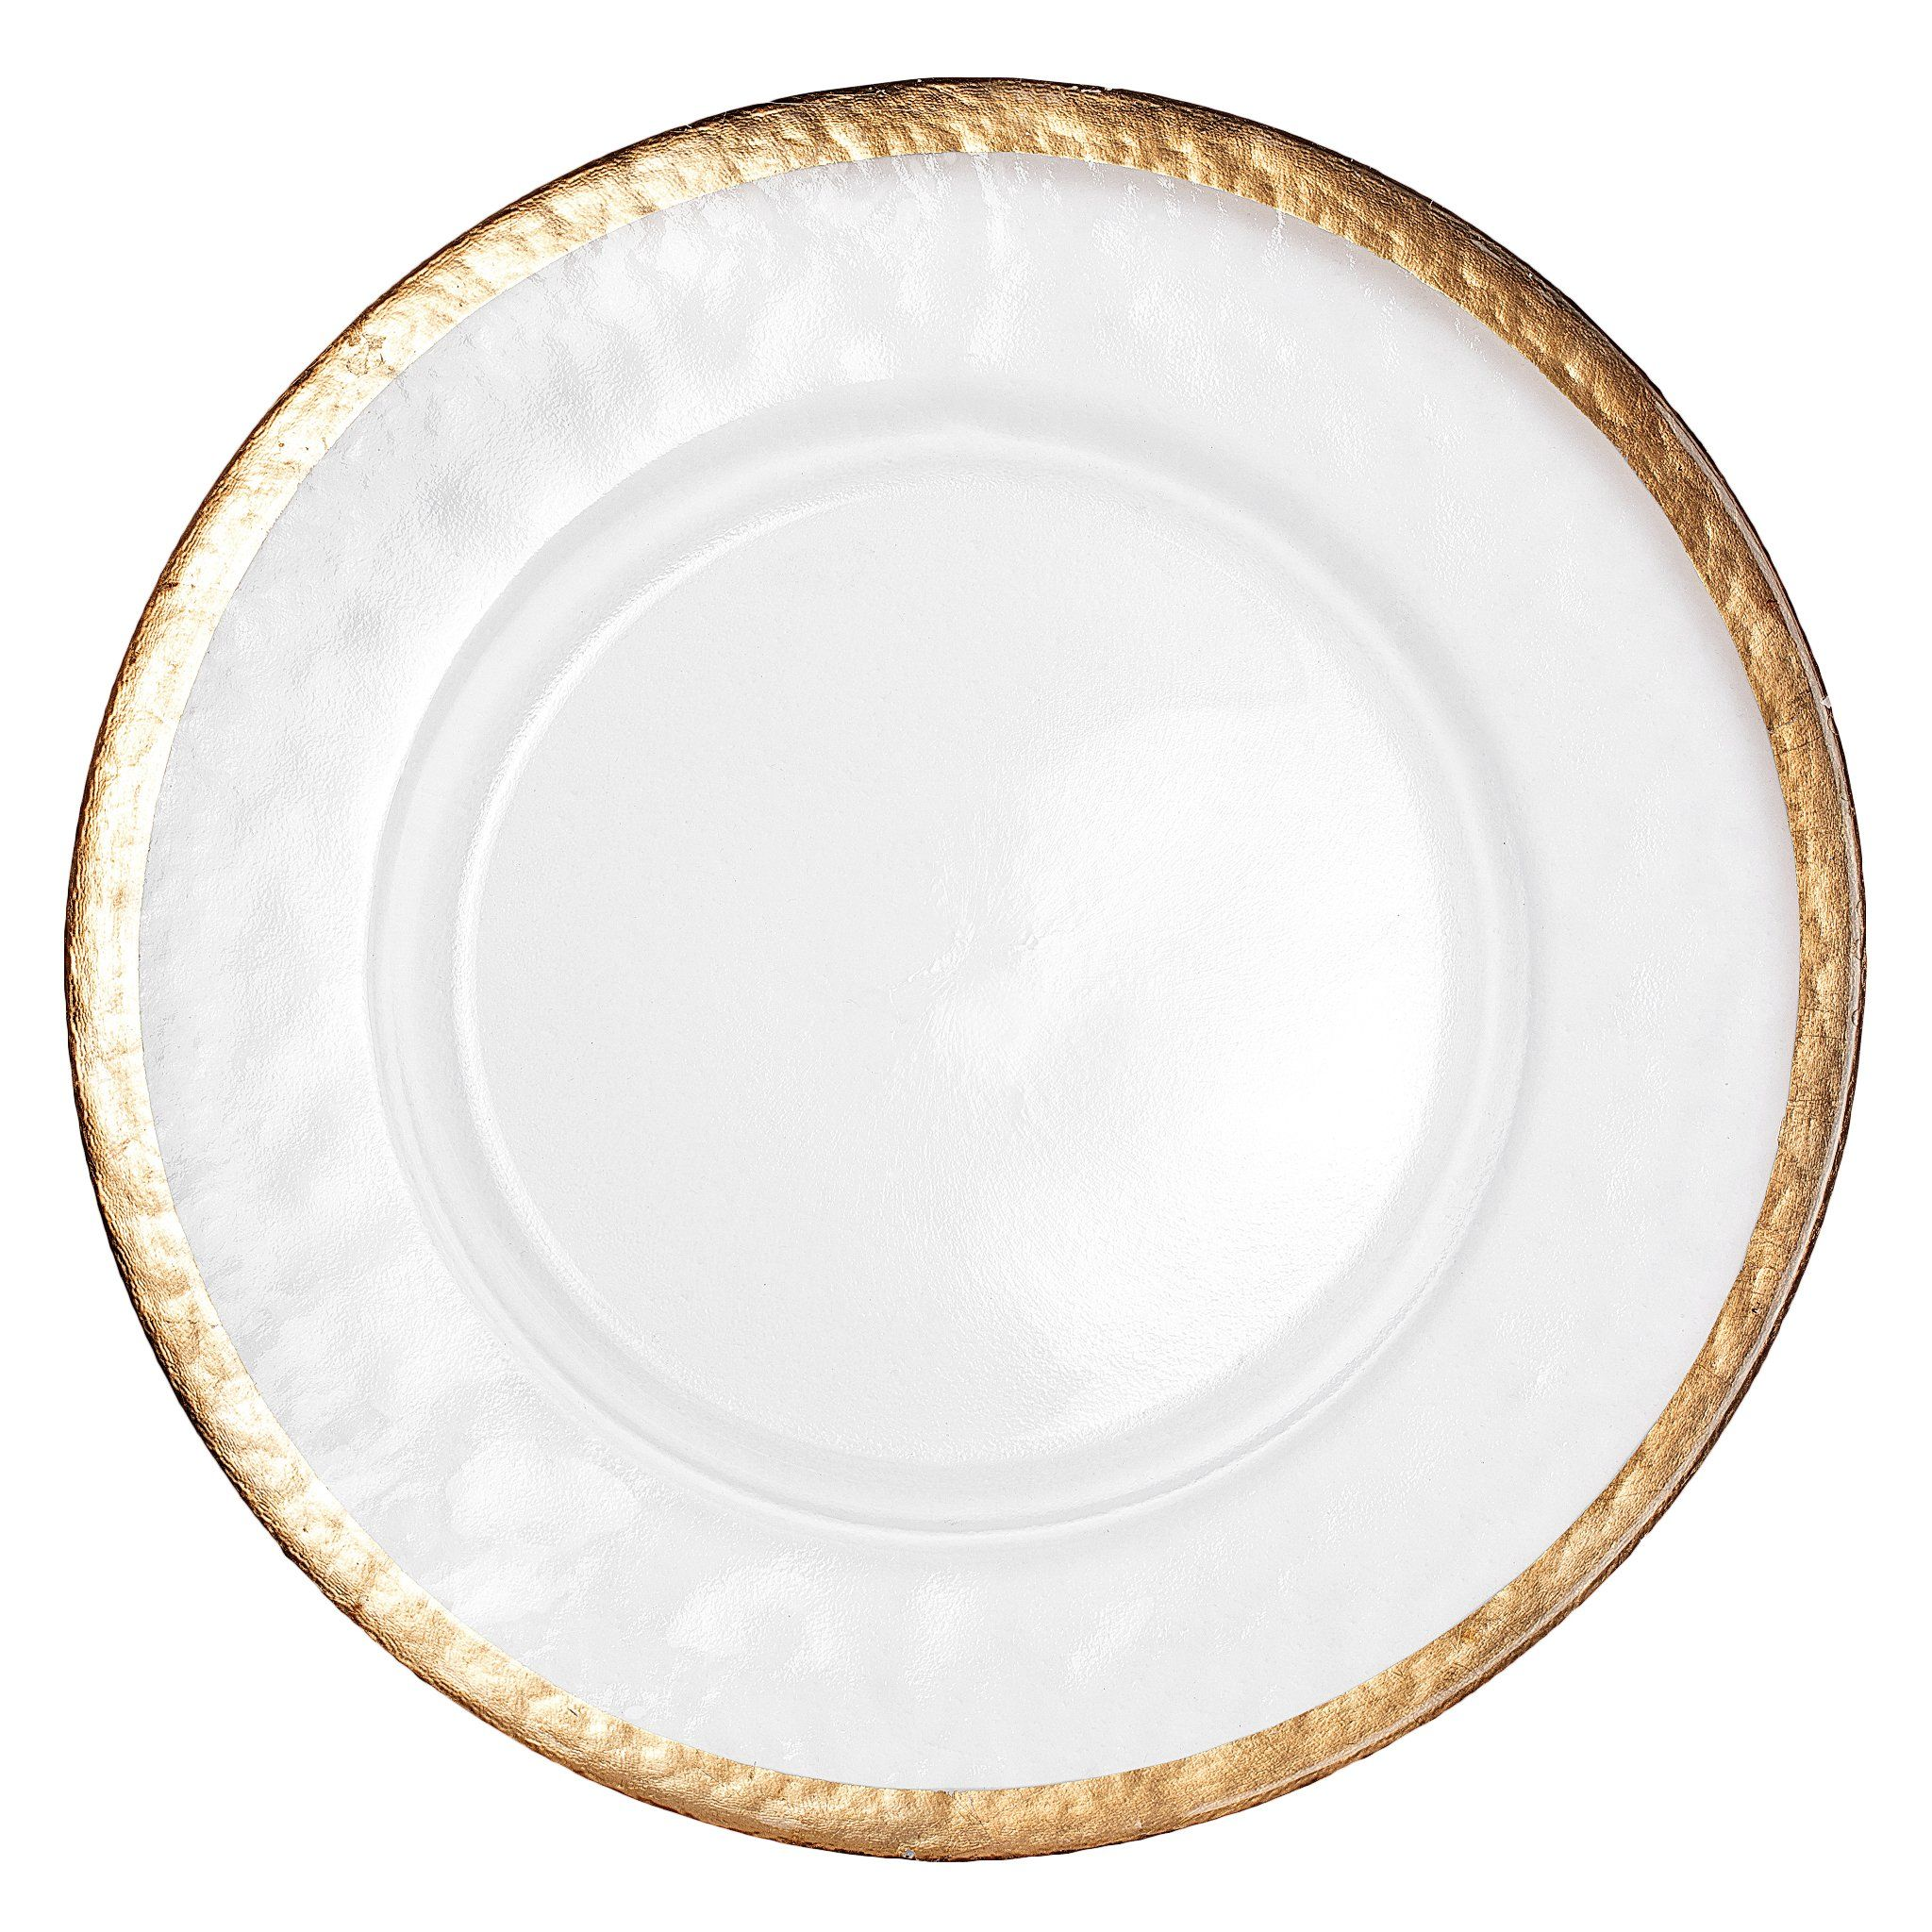 Alpine Glass Charger Plate - Gold trim